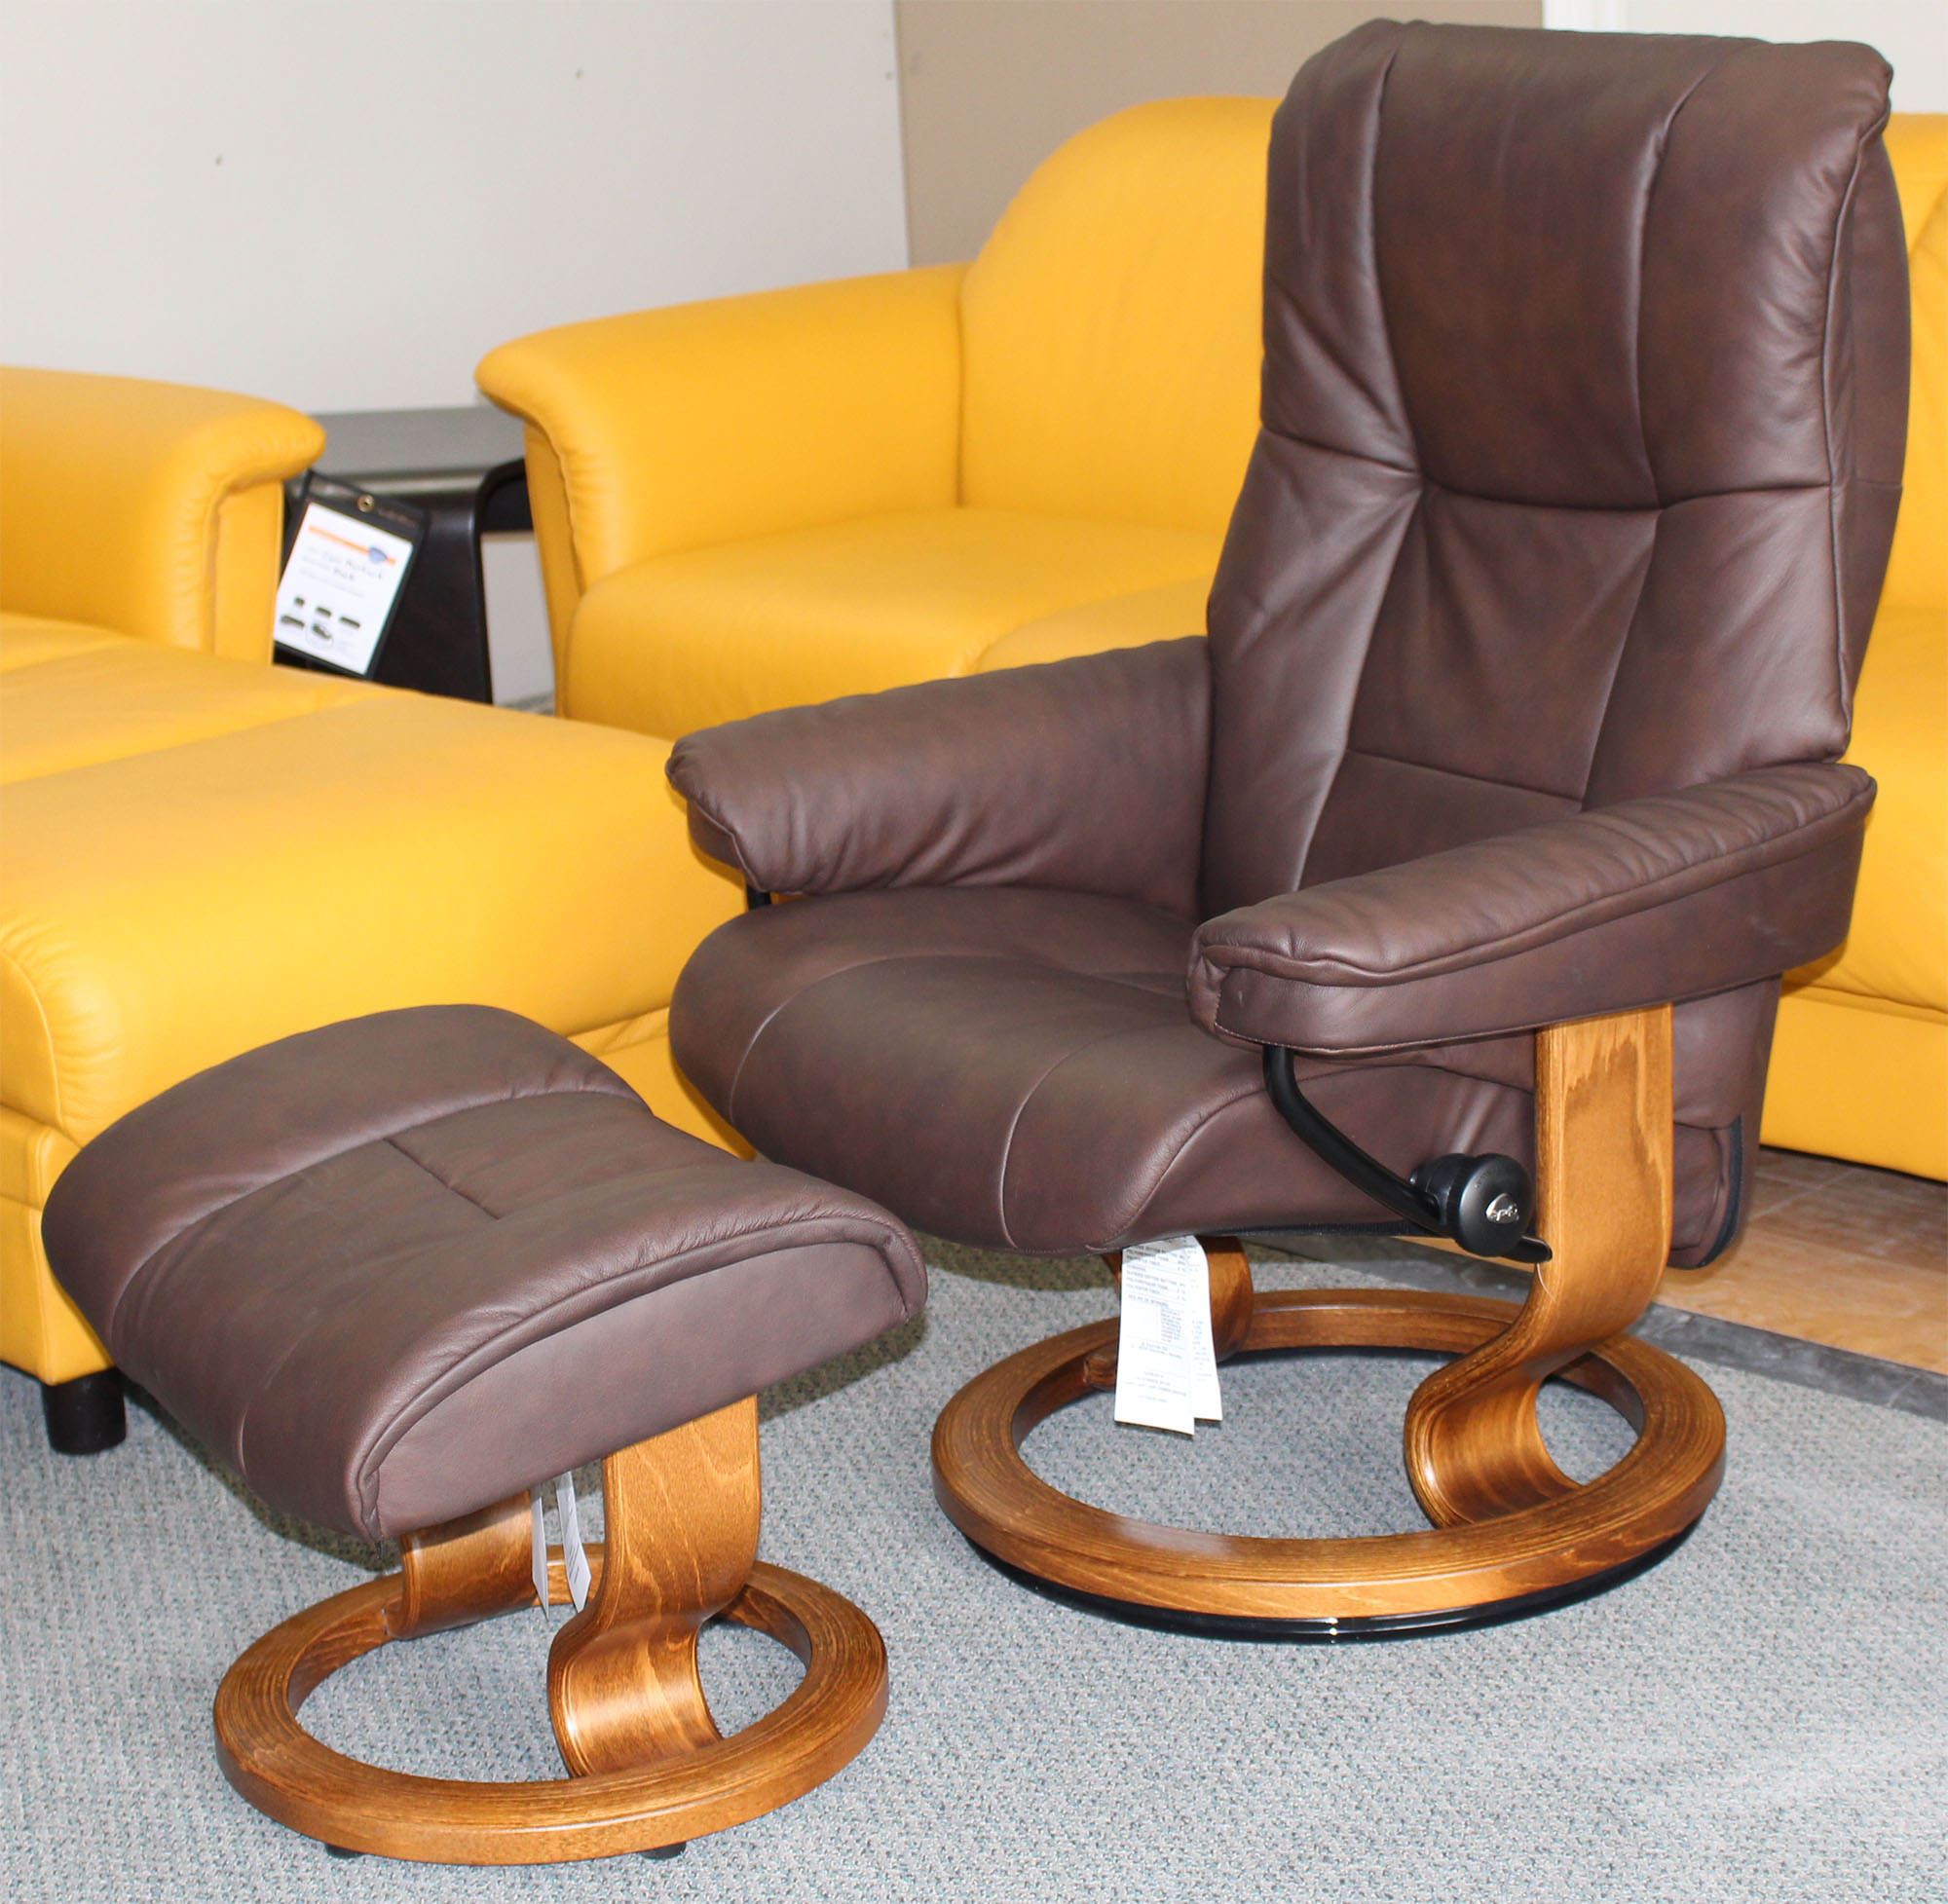 stressless chelsea small mayfair paloma chocolate leather recliner chair and ottoman by ekornes. Black Bedroom Furniture Sets. Home Design Ideas